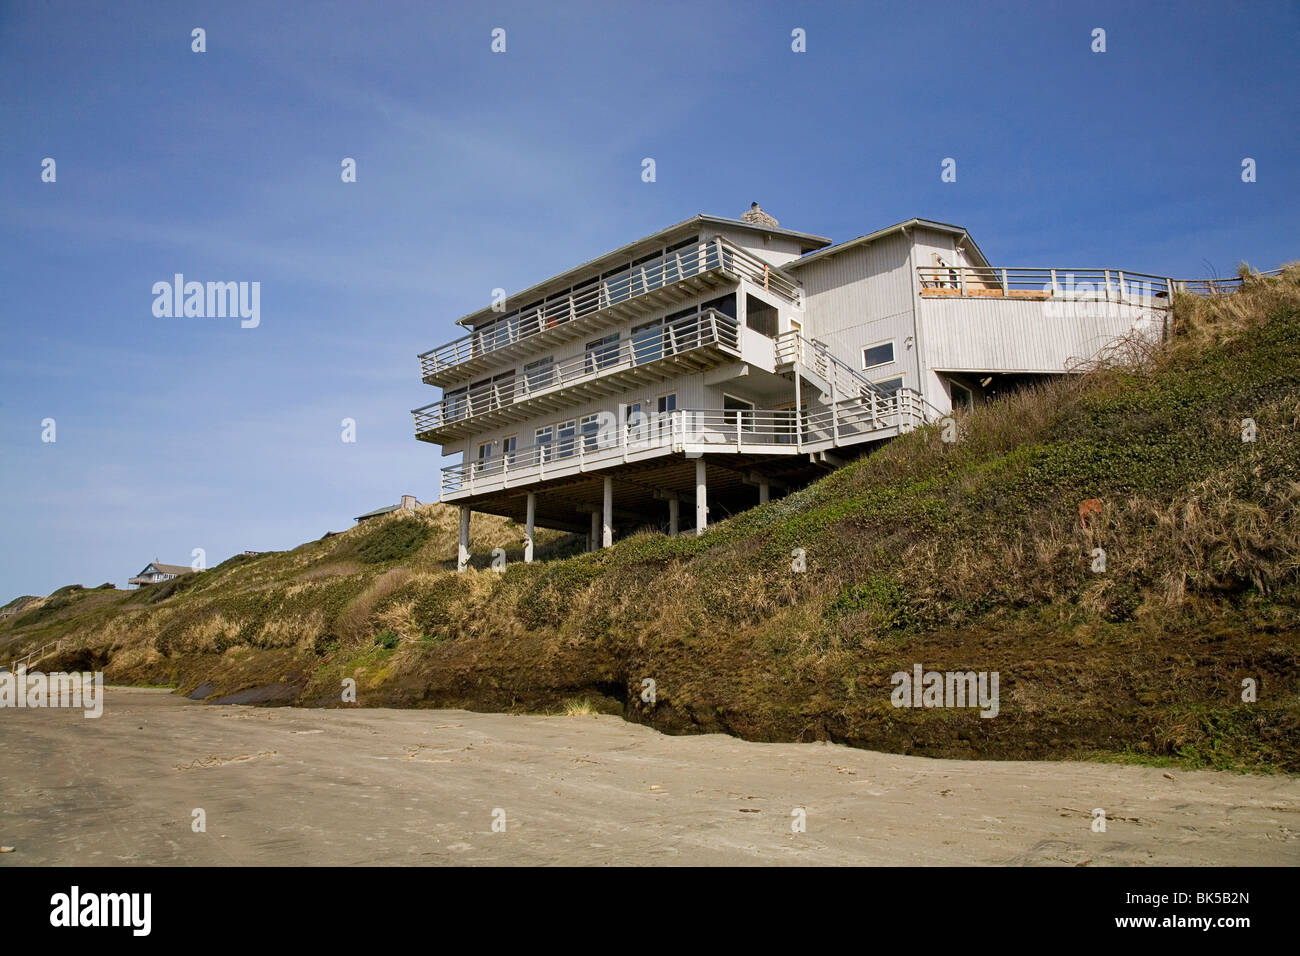 Attractive Beach House Newport Oregon Part - 5: ... A Beach House Sits On Eroded Sand Dunes By Pacific Ocean Waves And High  Water In